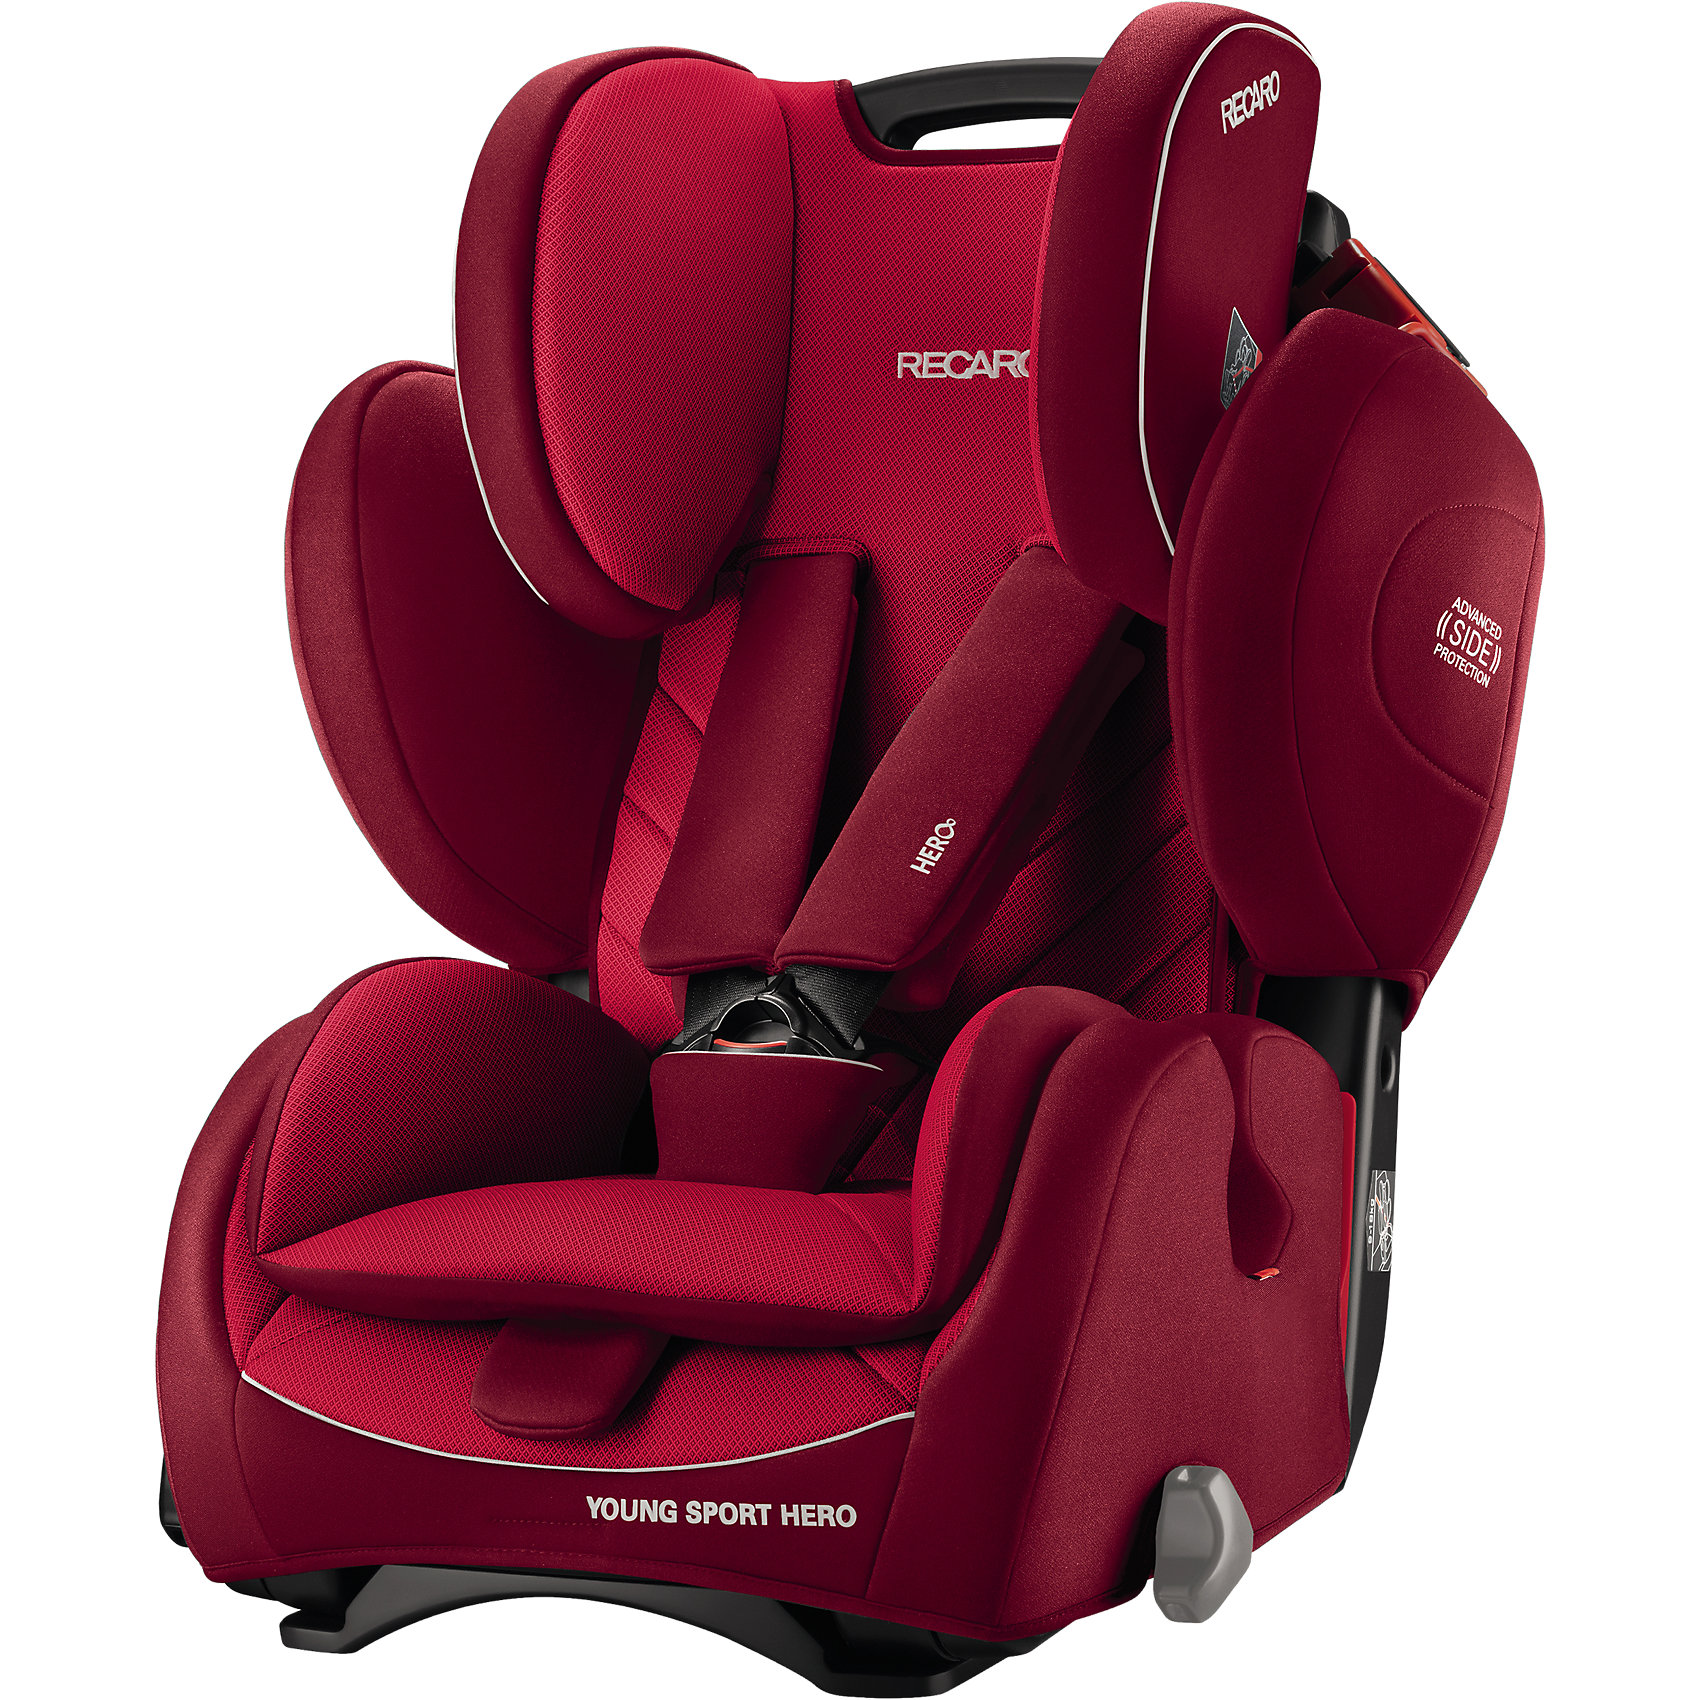 Автокресло Young Sport Hero,  9-36 кг, Recaro, indy red